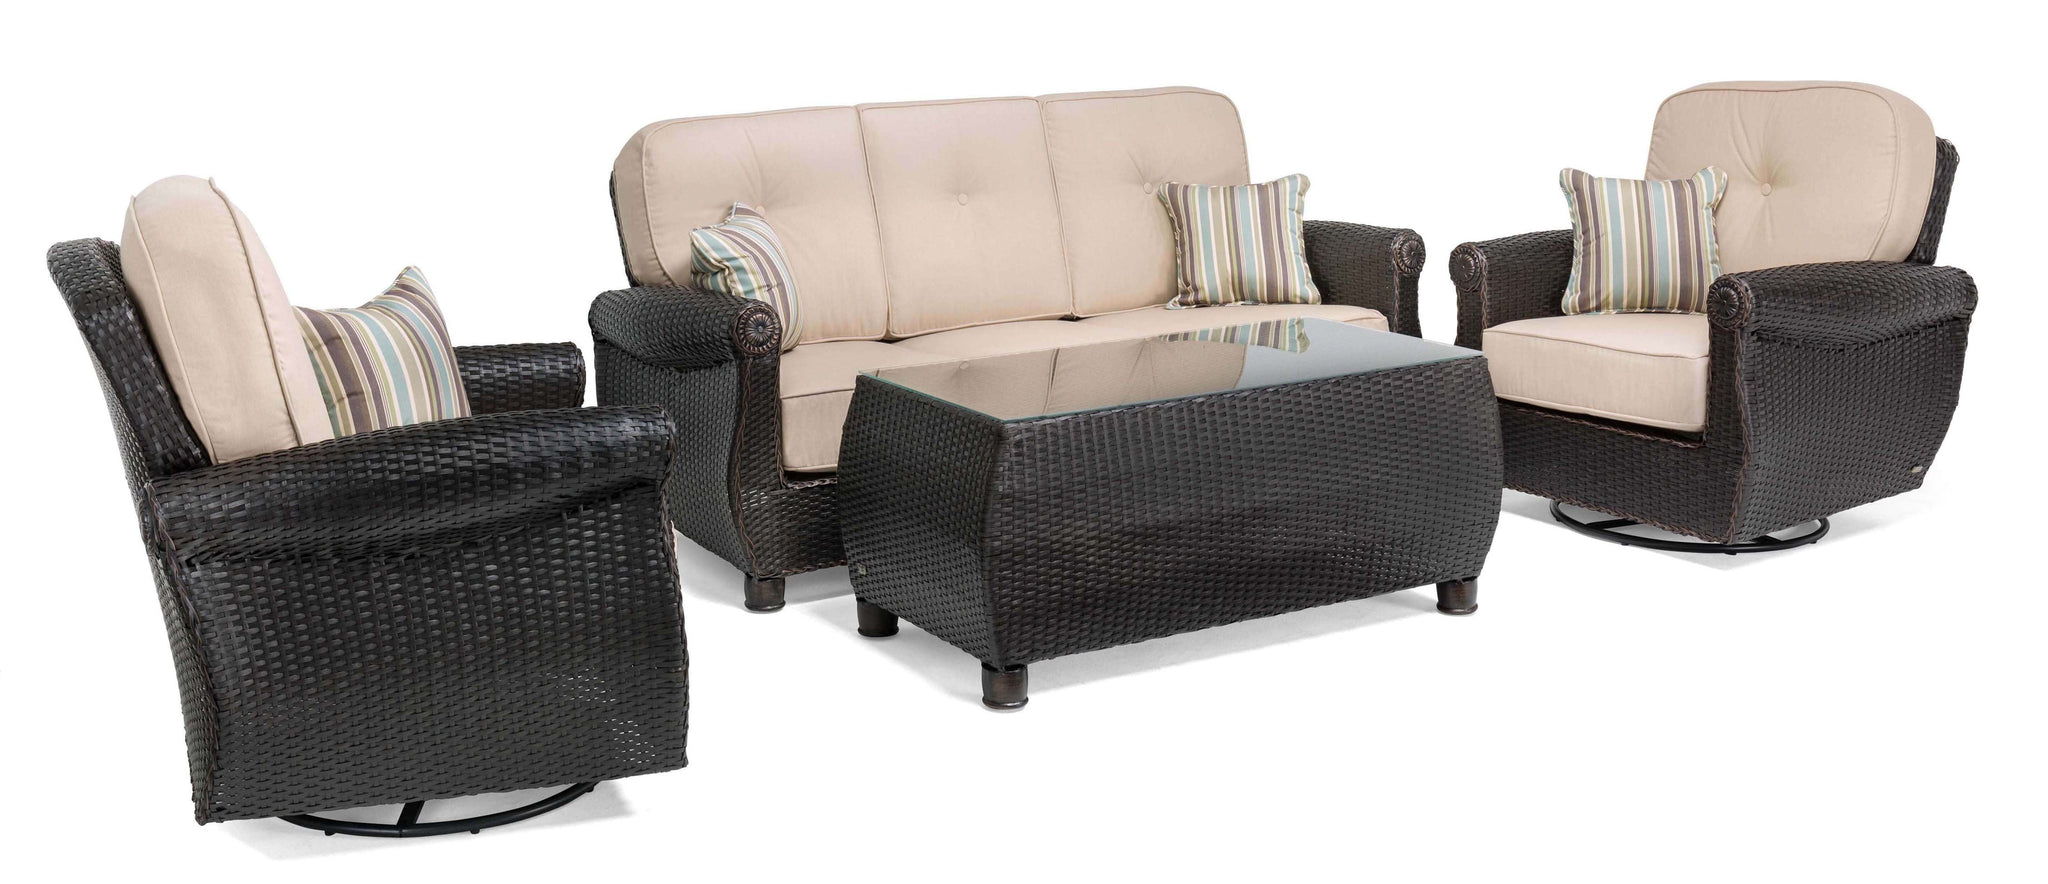 Breckenridge Tan 4 Pc Patio Furniture Set Swivel Rockers Sofa